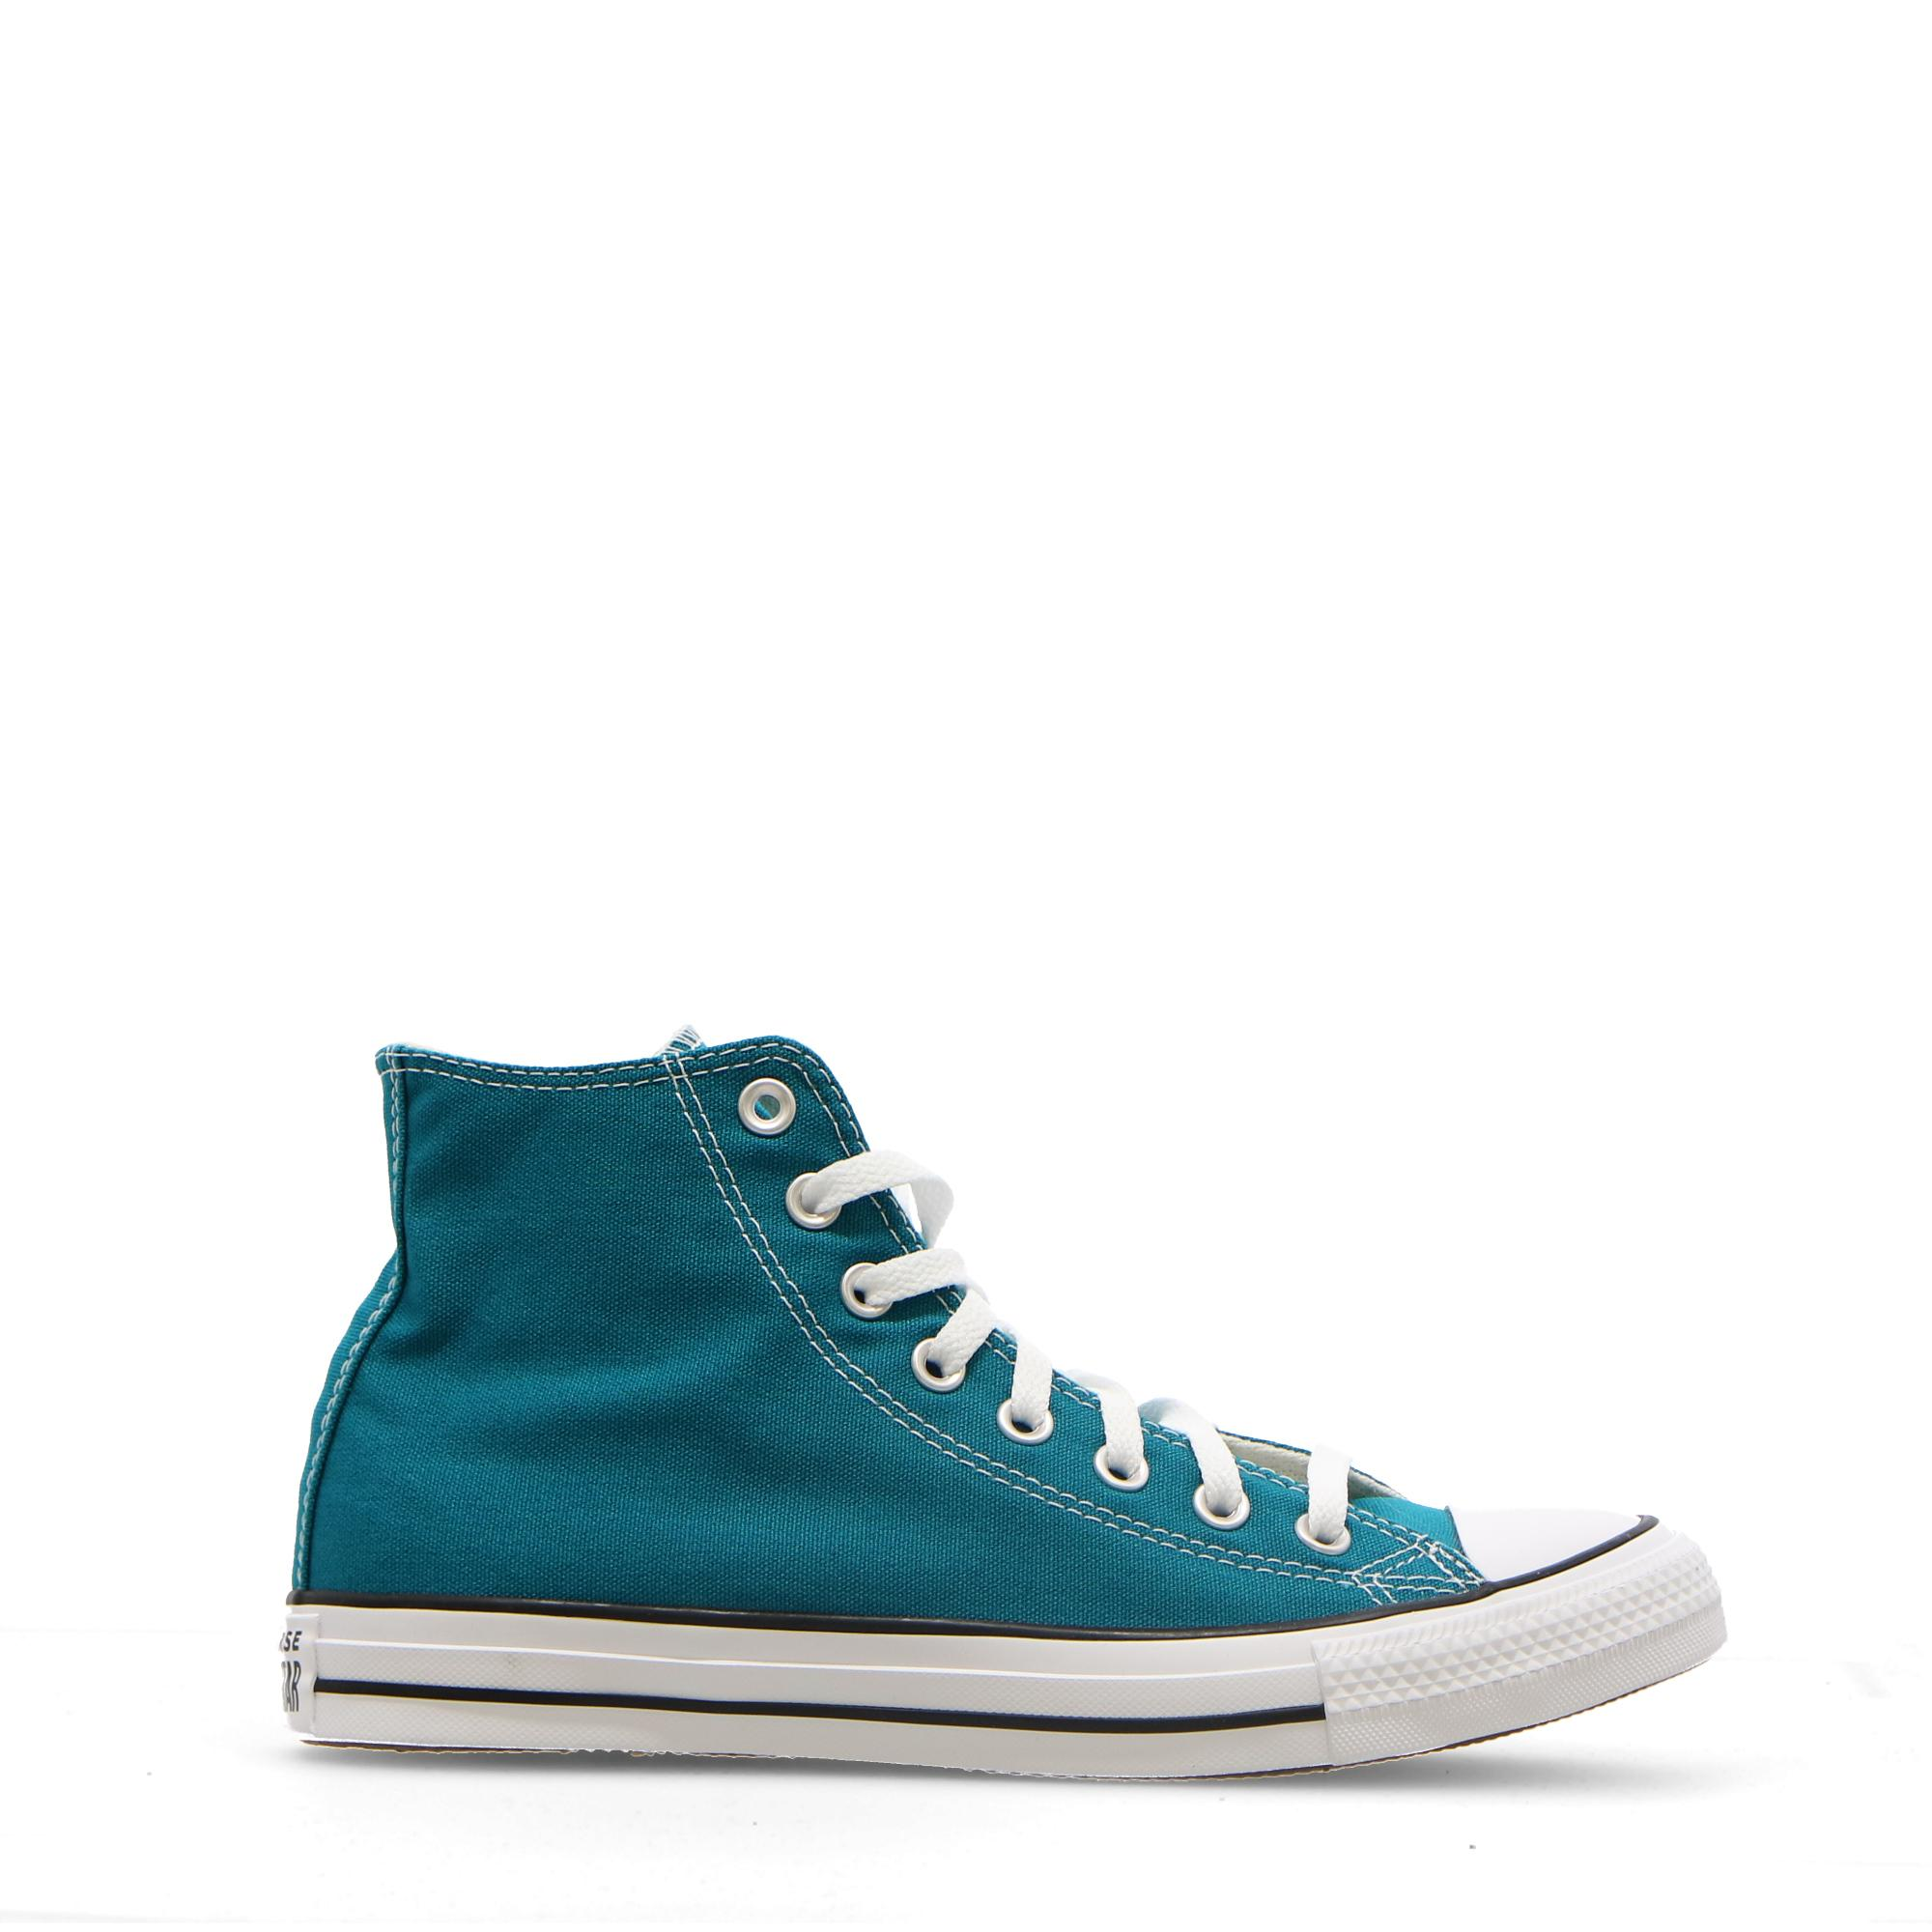 Converse Chuck Taylor All Star Seasonal Hi Bright spruce